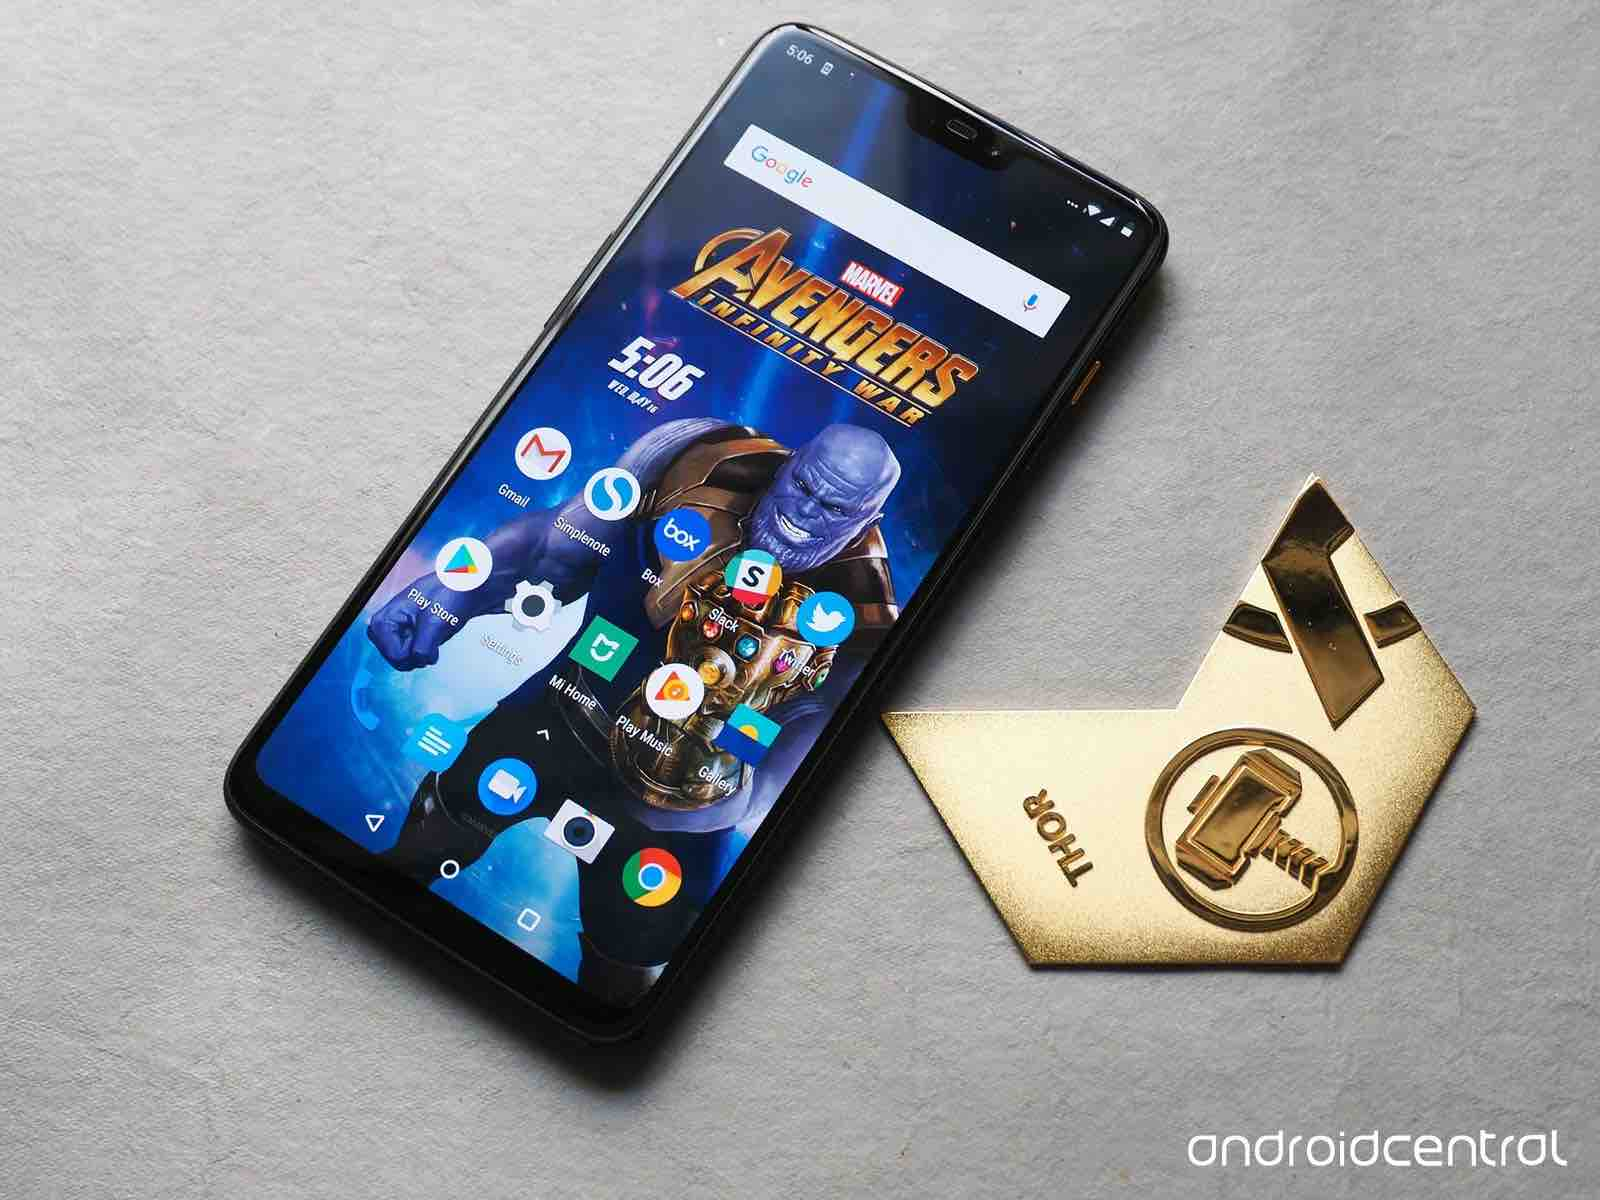 OnePlus 6 Avengers Limited Edition